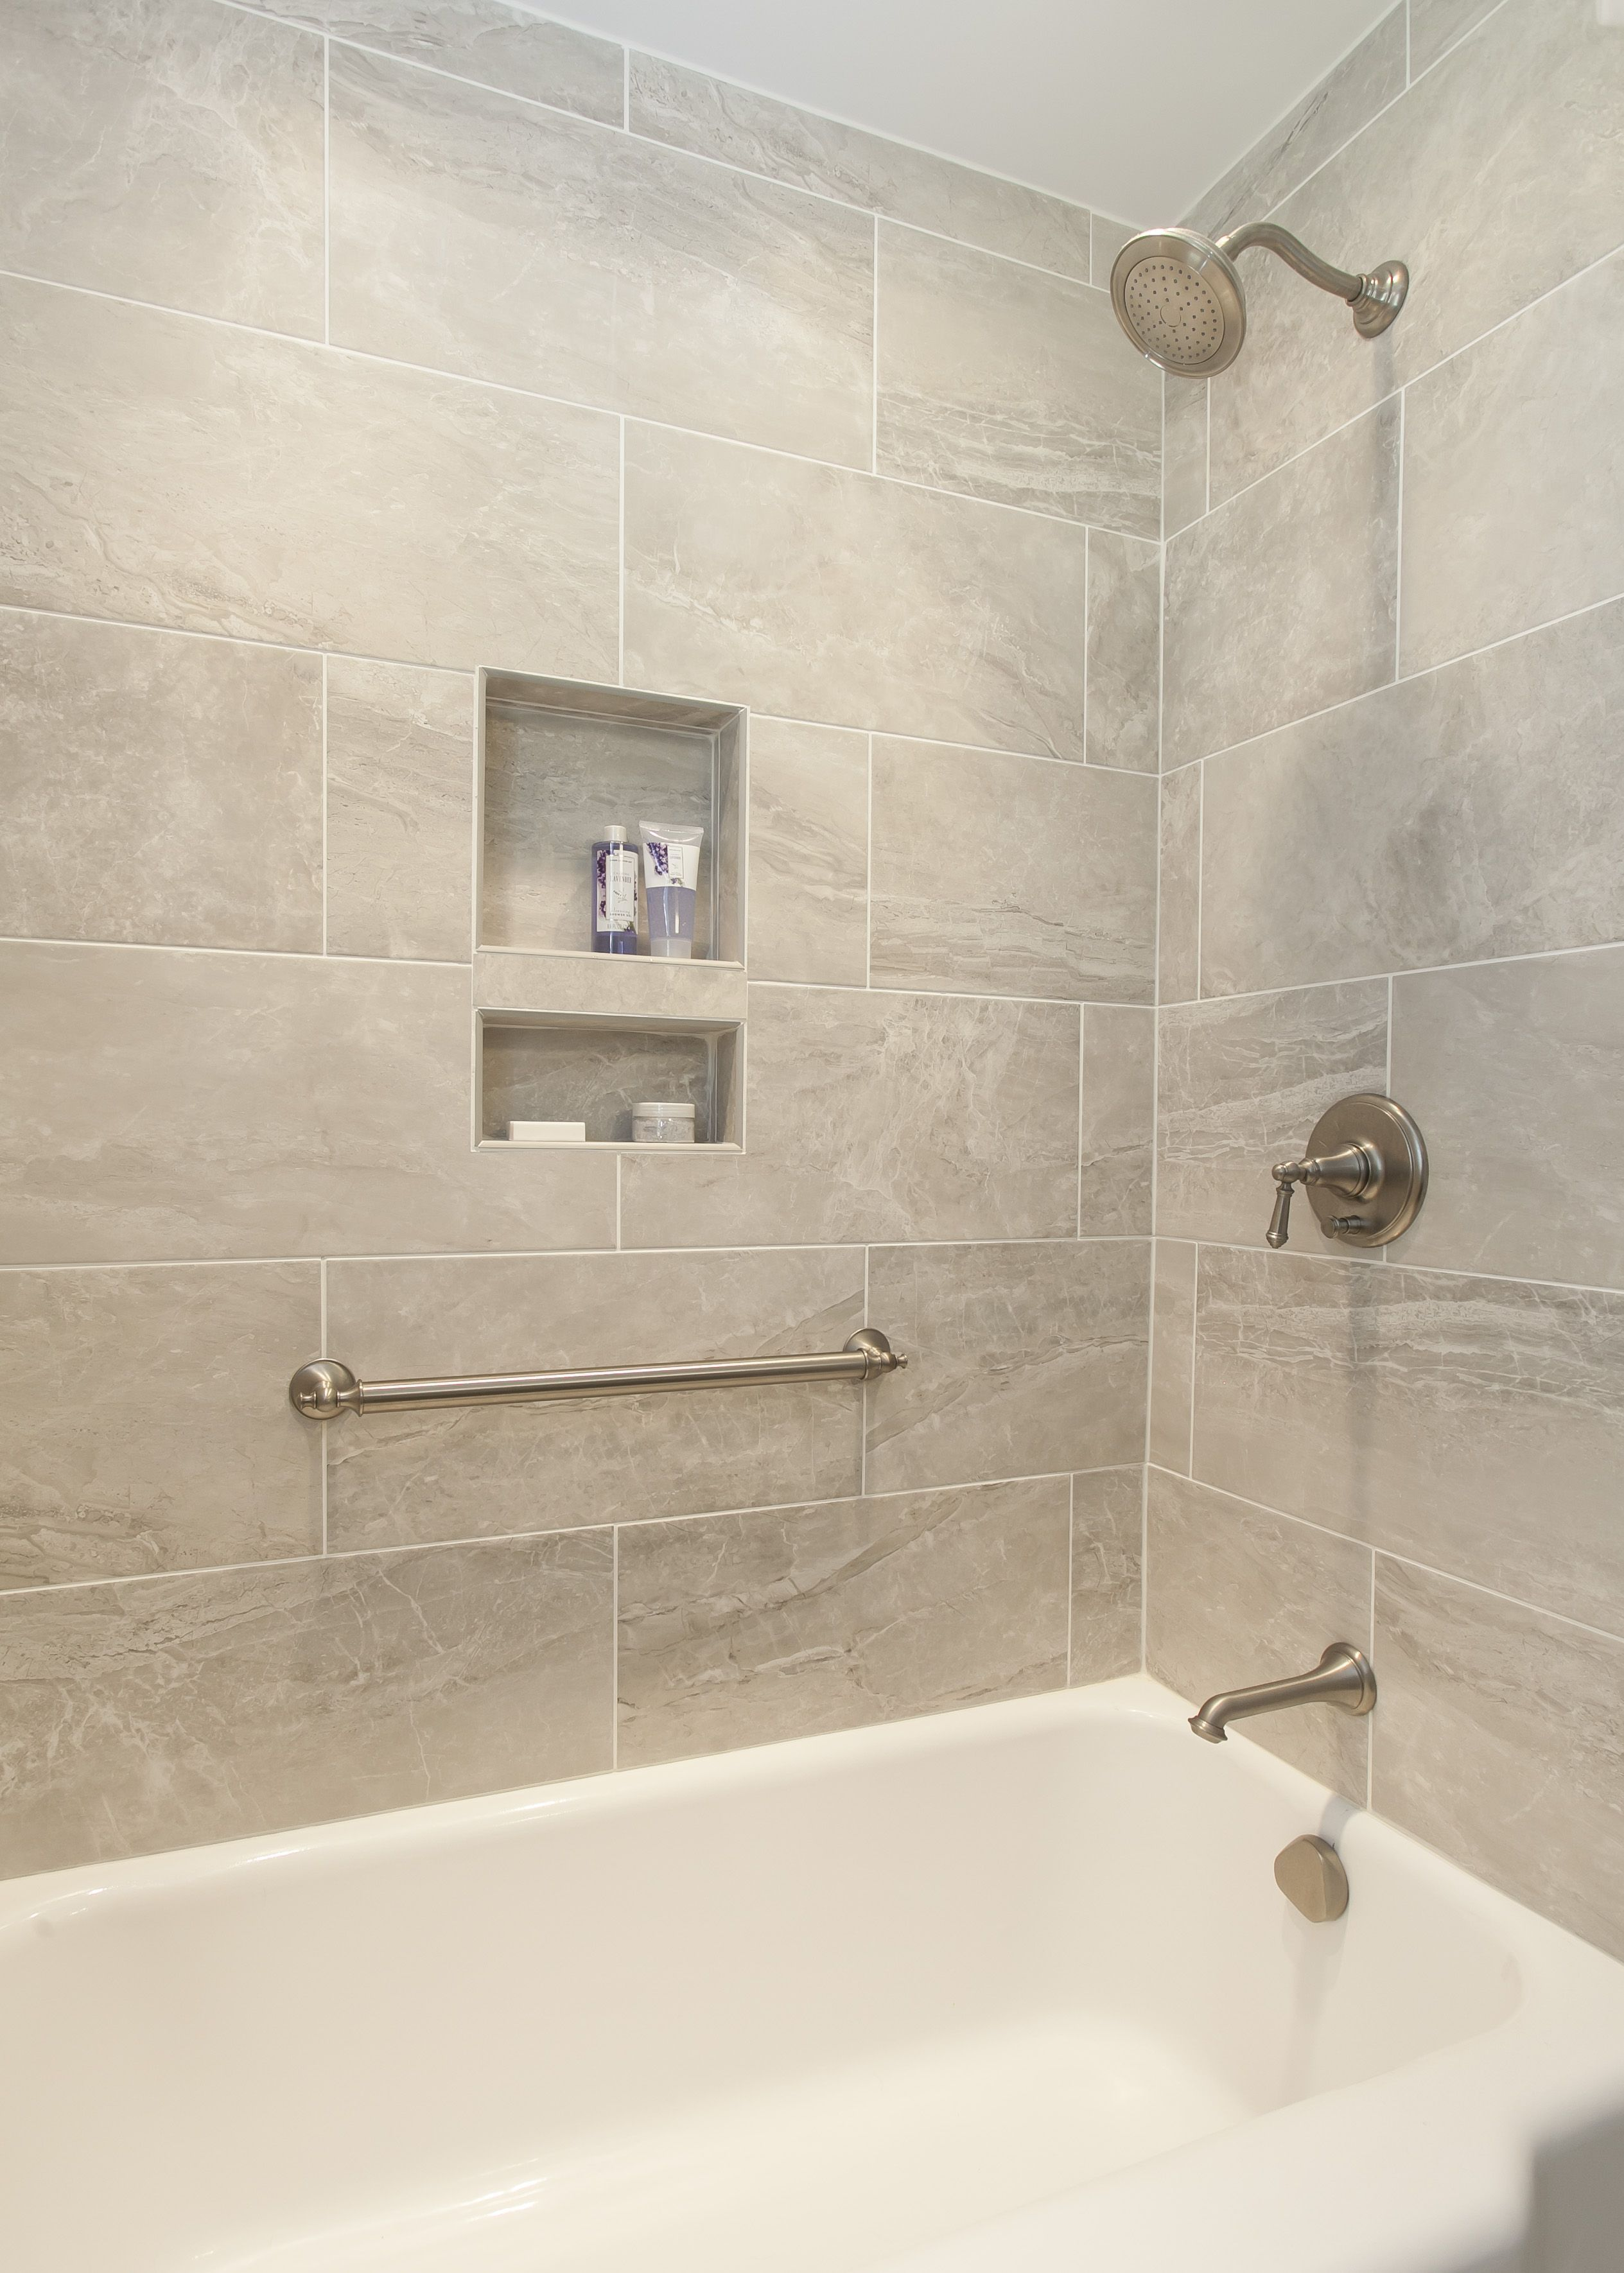 Stunning Bath Tub Tile Surround With Built In Niches